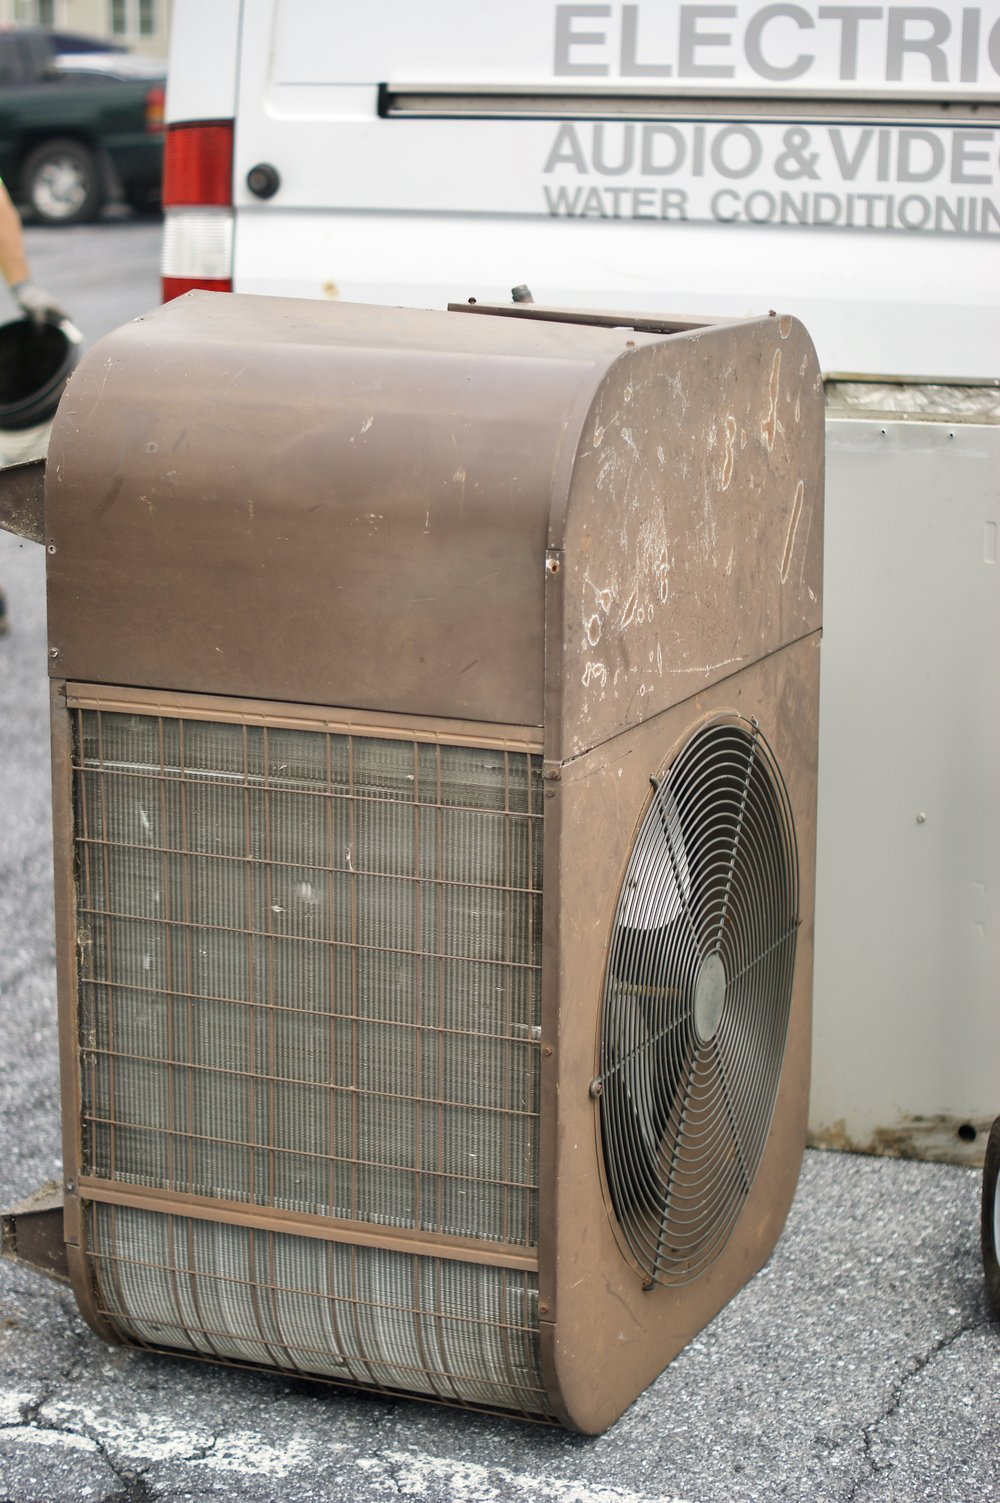 The old A/C unit awaits disposal.